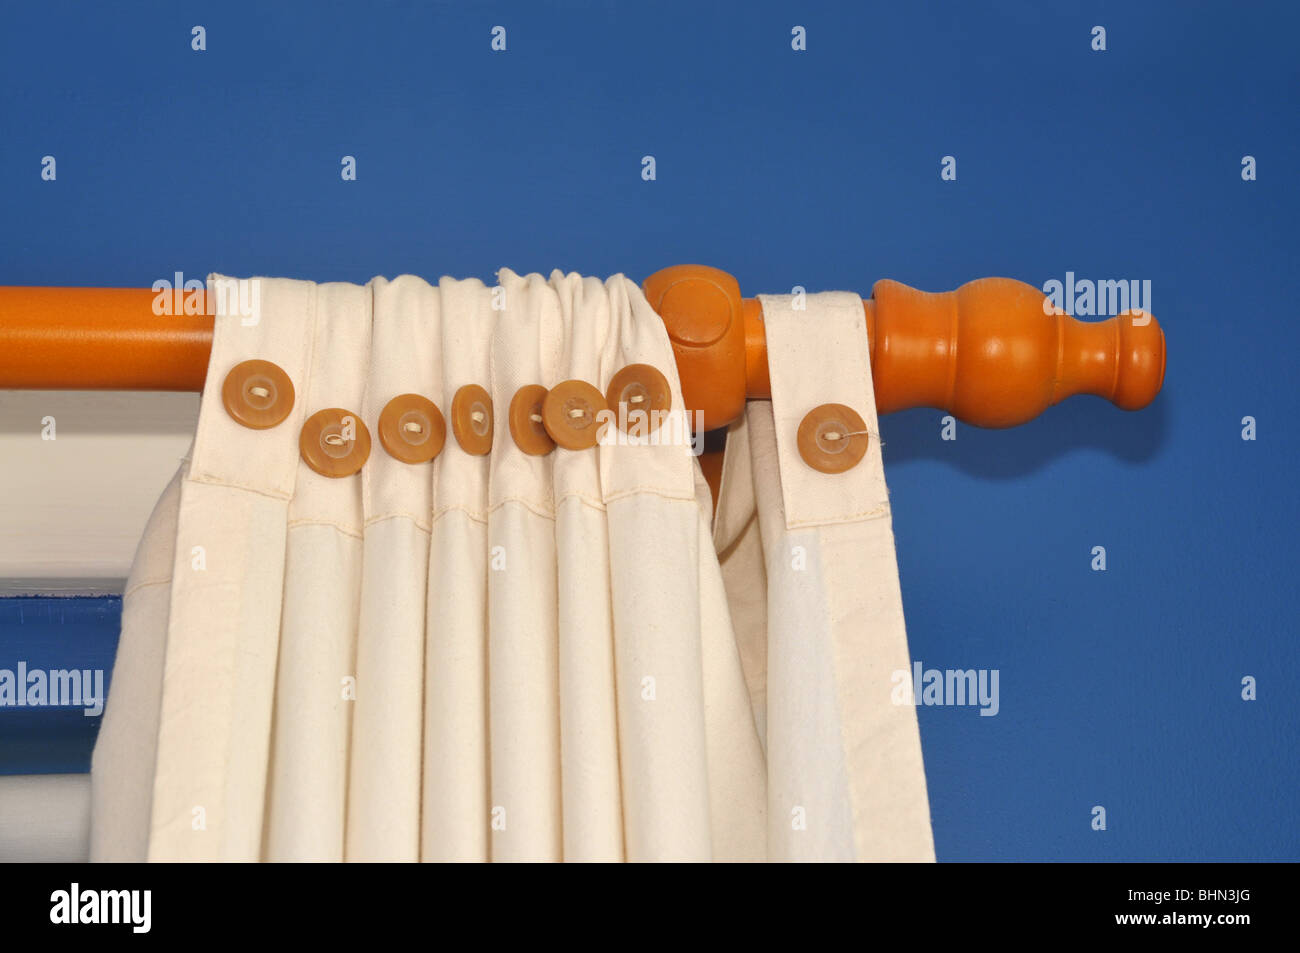 Close up of curtain attachments and railing. - Stock Image